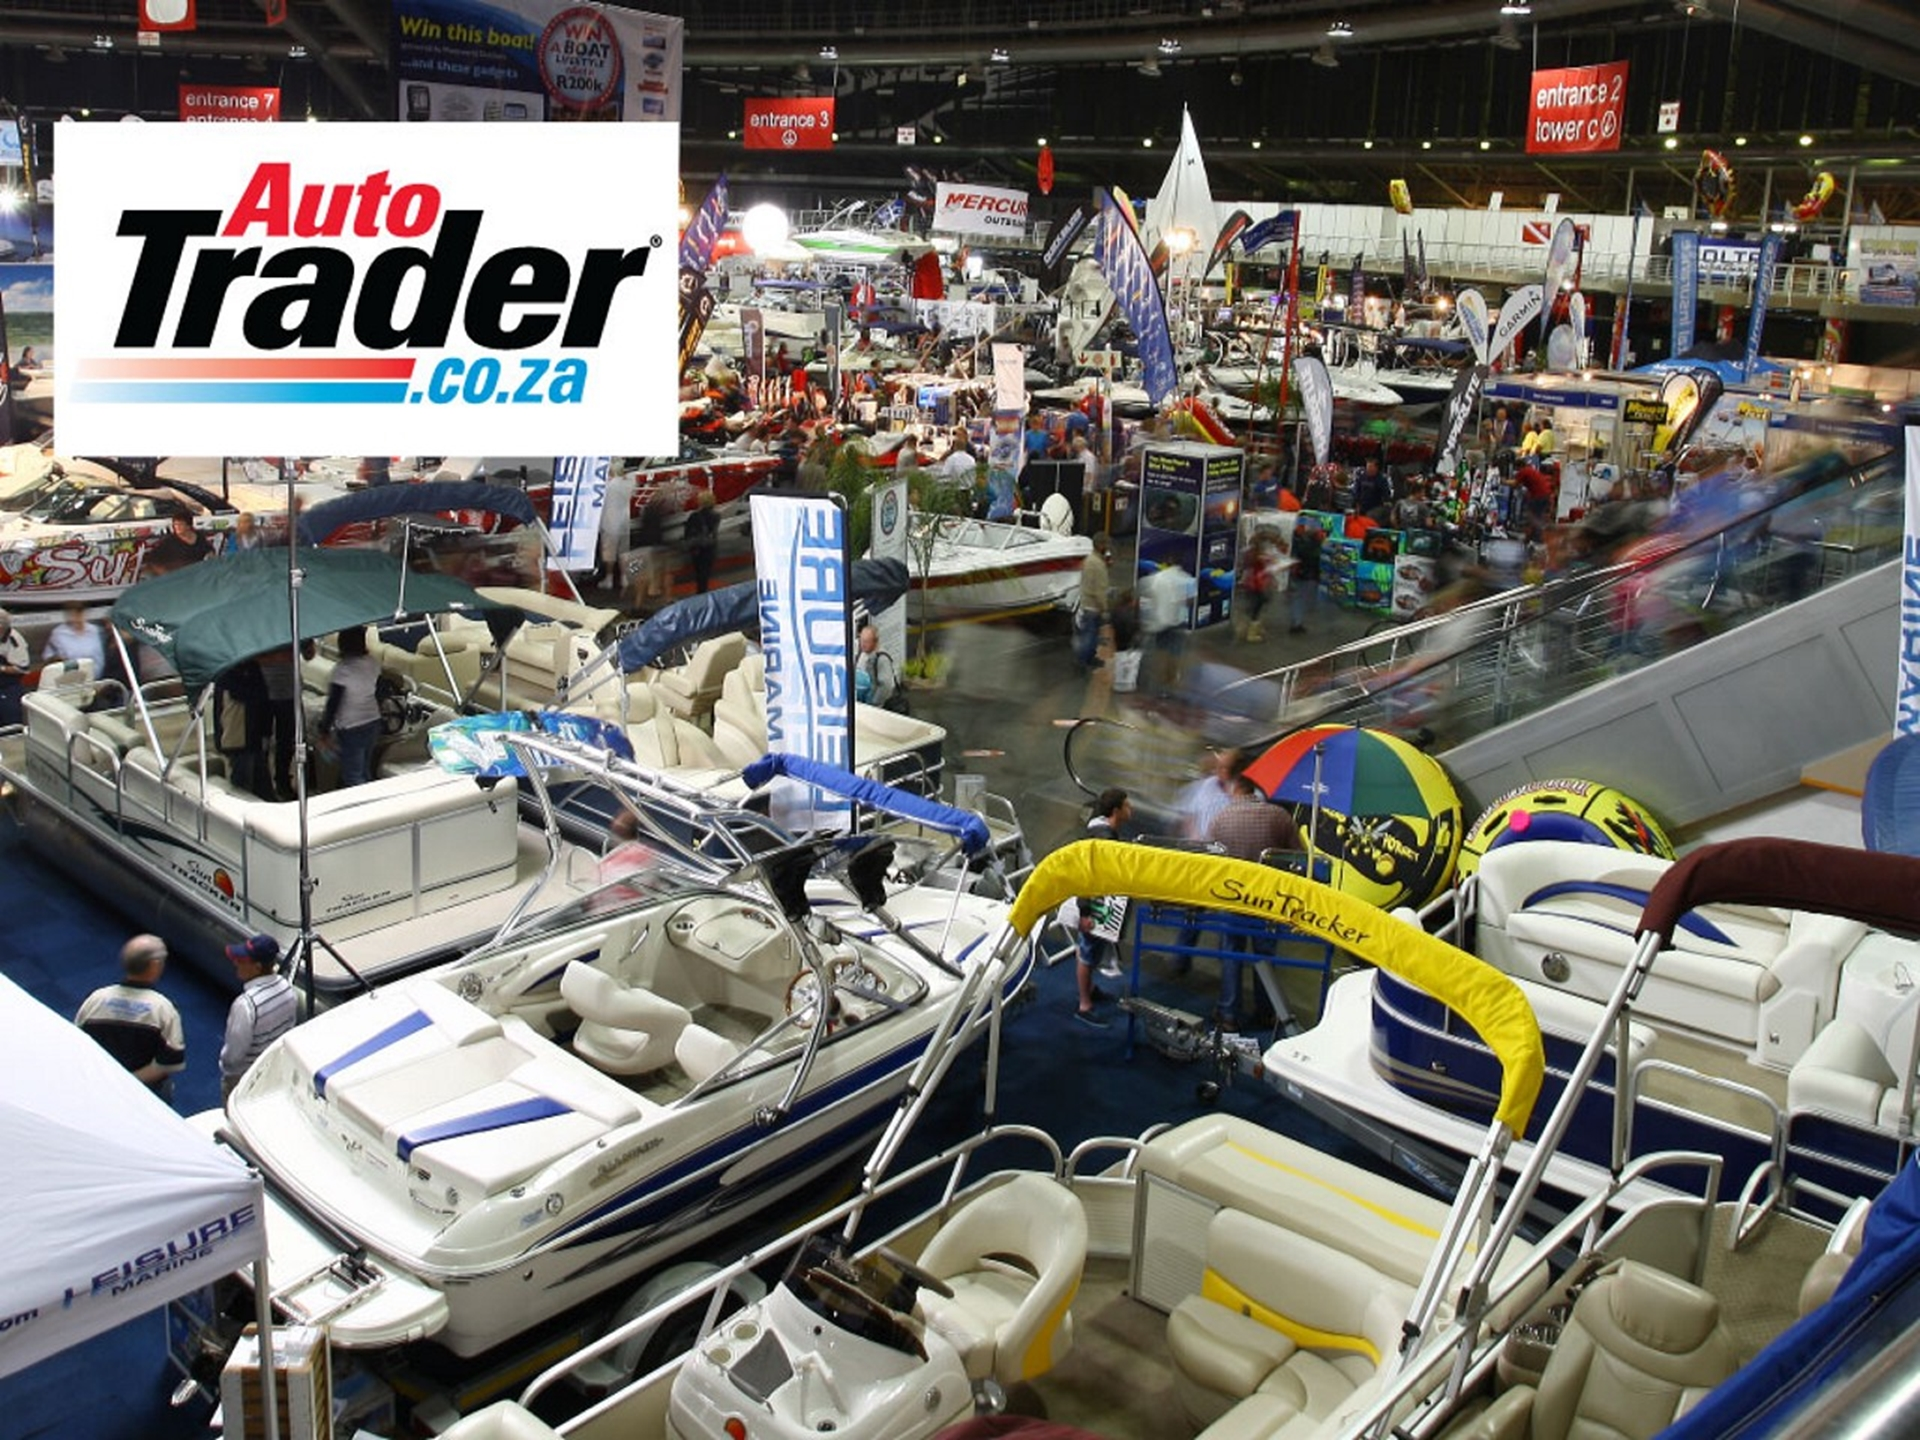 AutoTrader National Boat Show